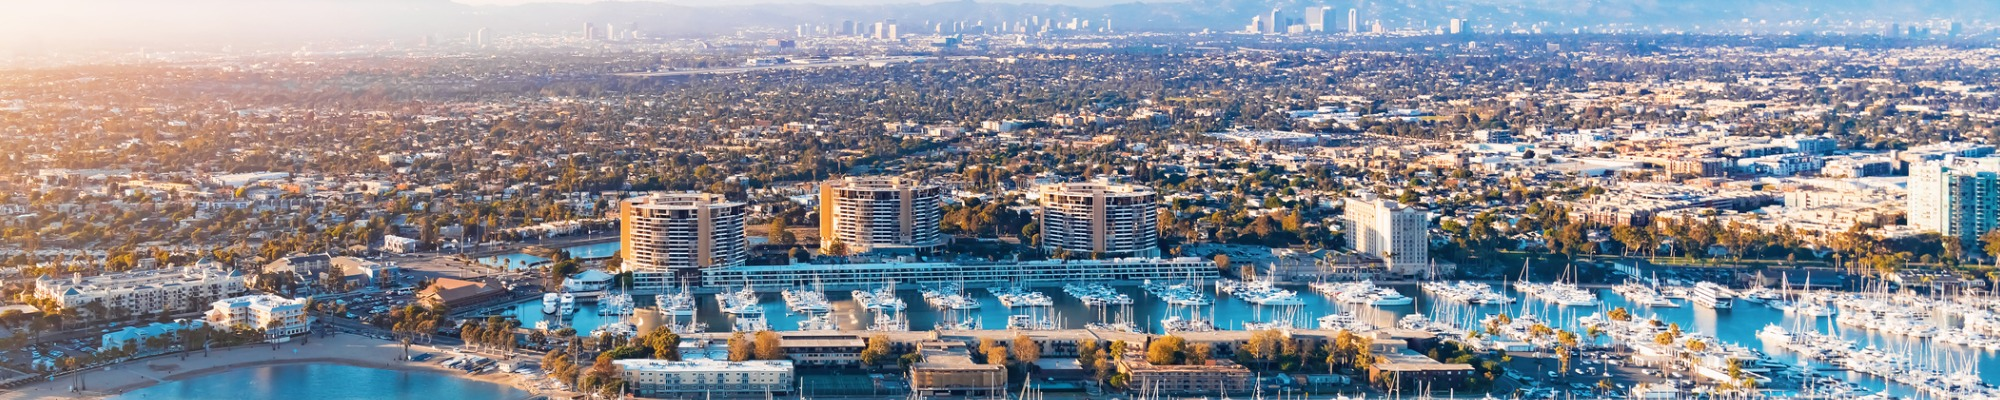 Aerial-view-of-the-marina-del-rey-harbor-in-picture-id656783864 (1)